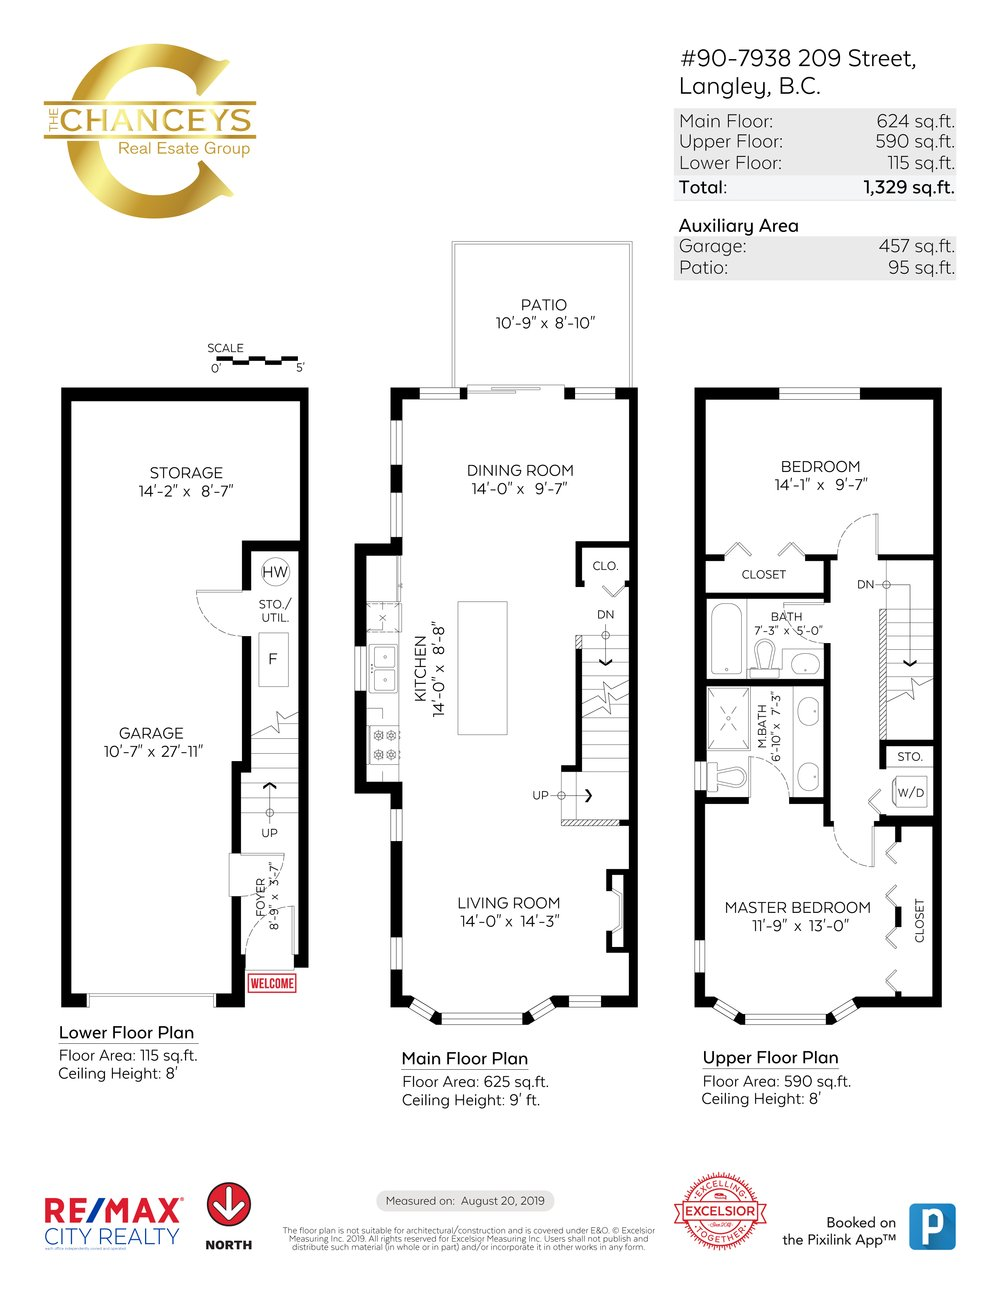 Floor Plan for a 2 Bedroom Townhouse in